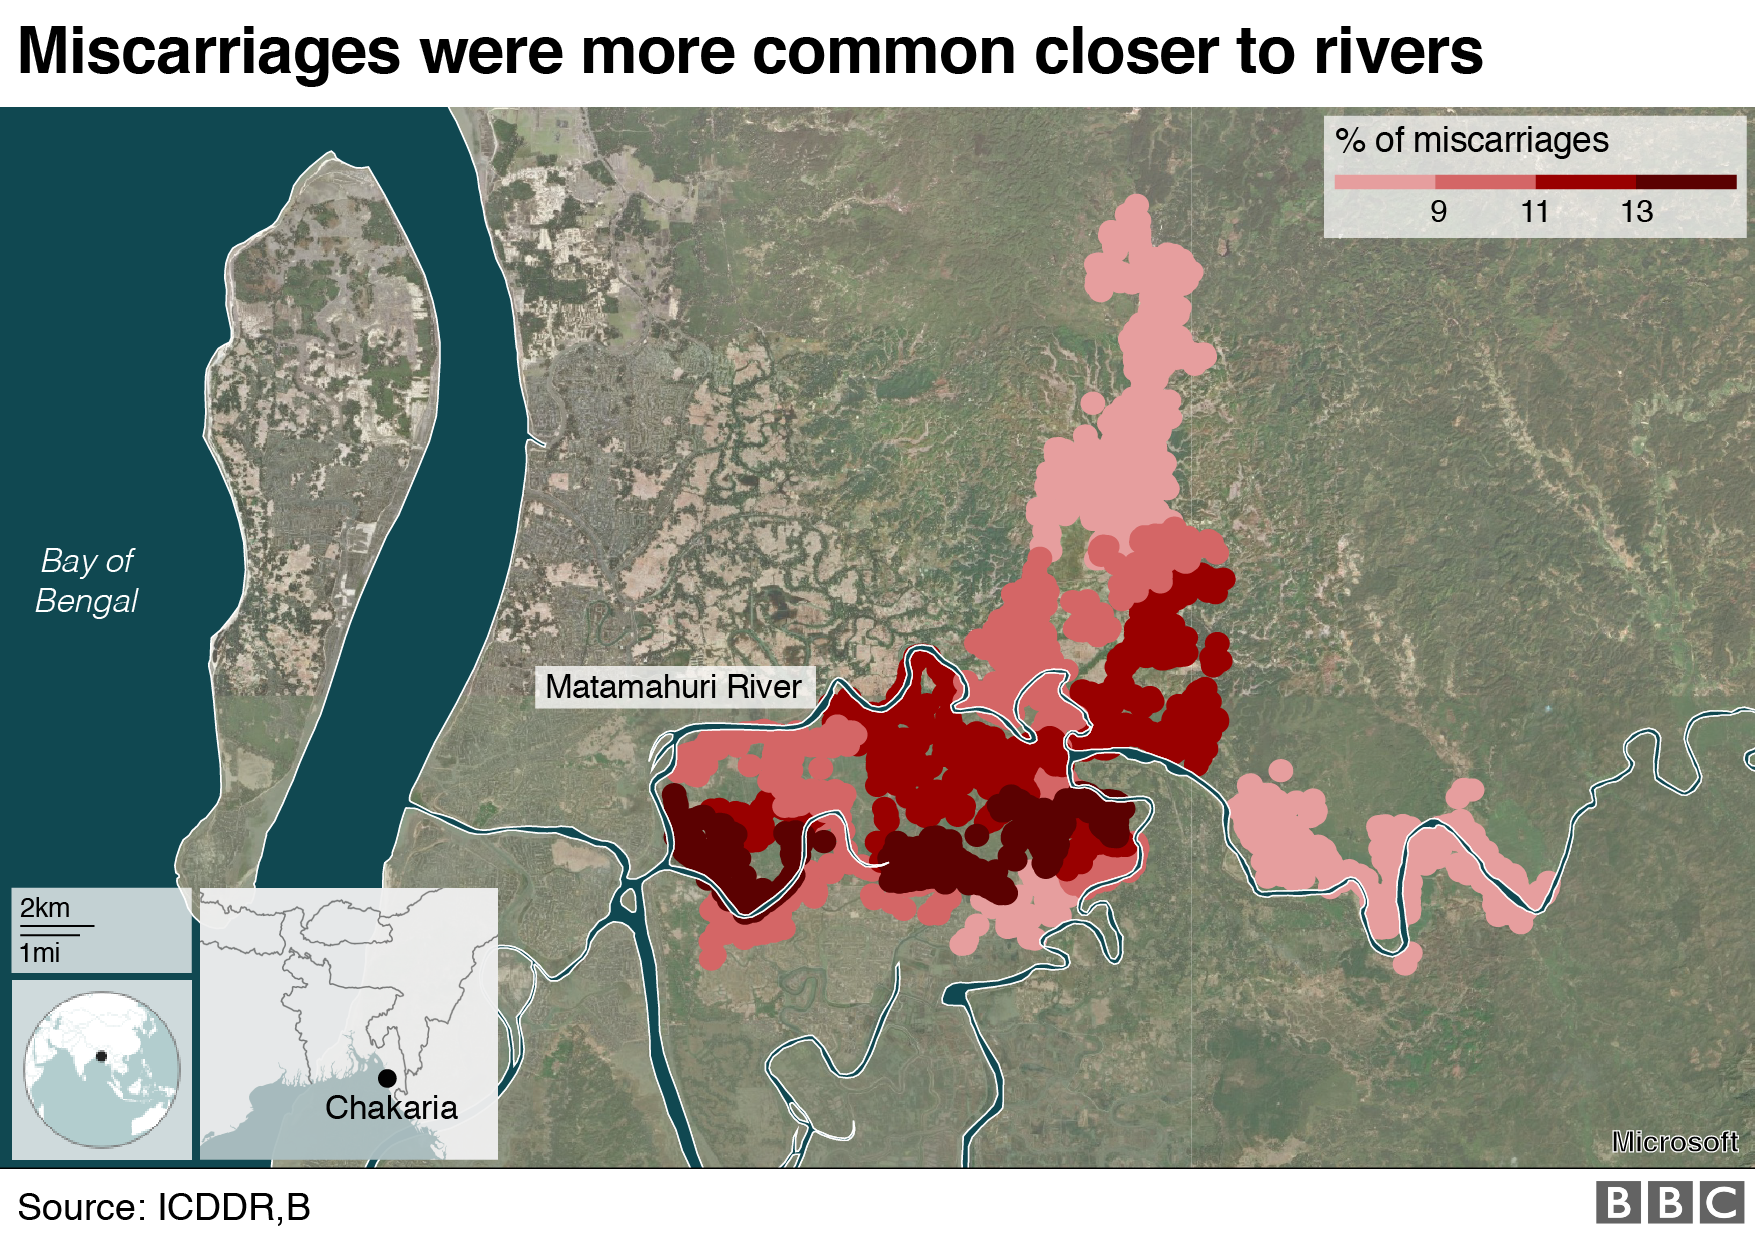 BBC Graphic of miscarriages that take place closer to rivers